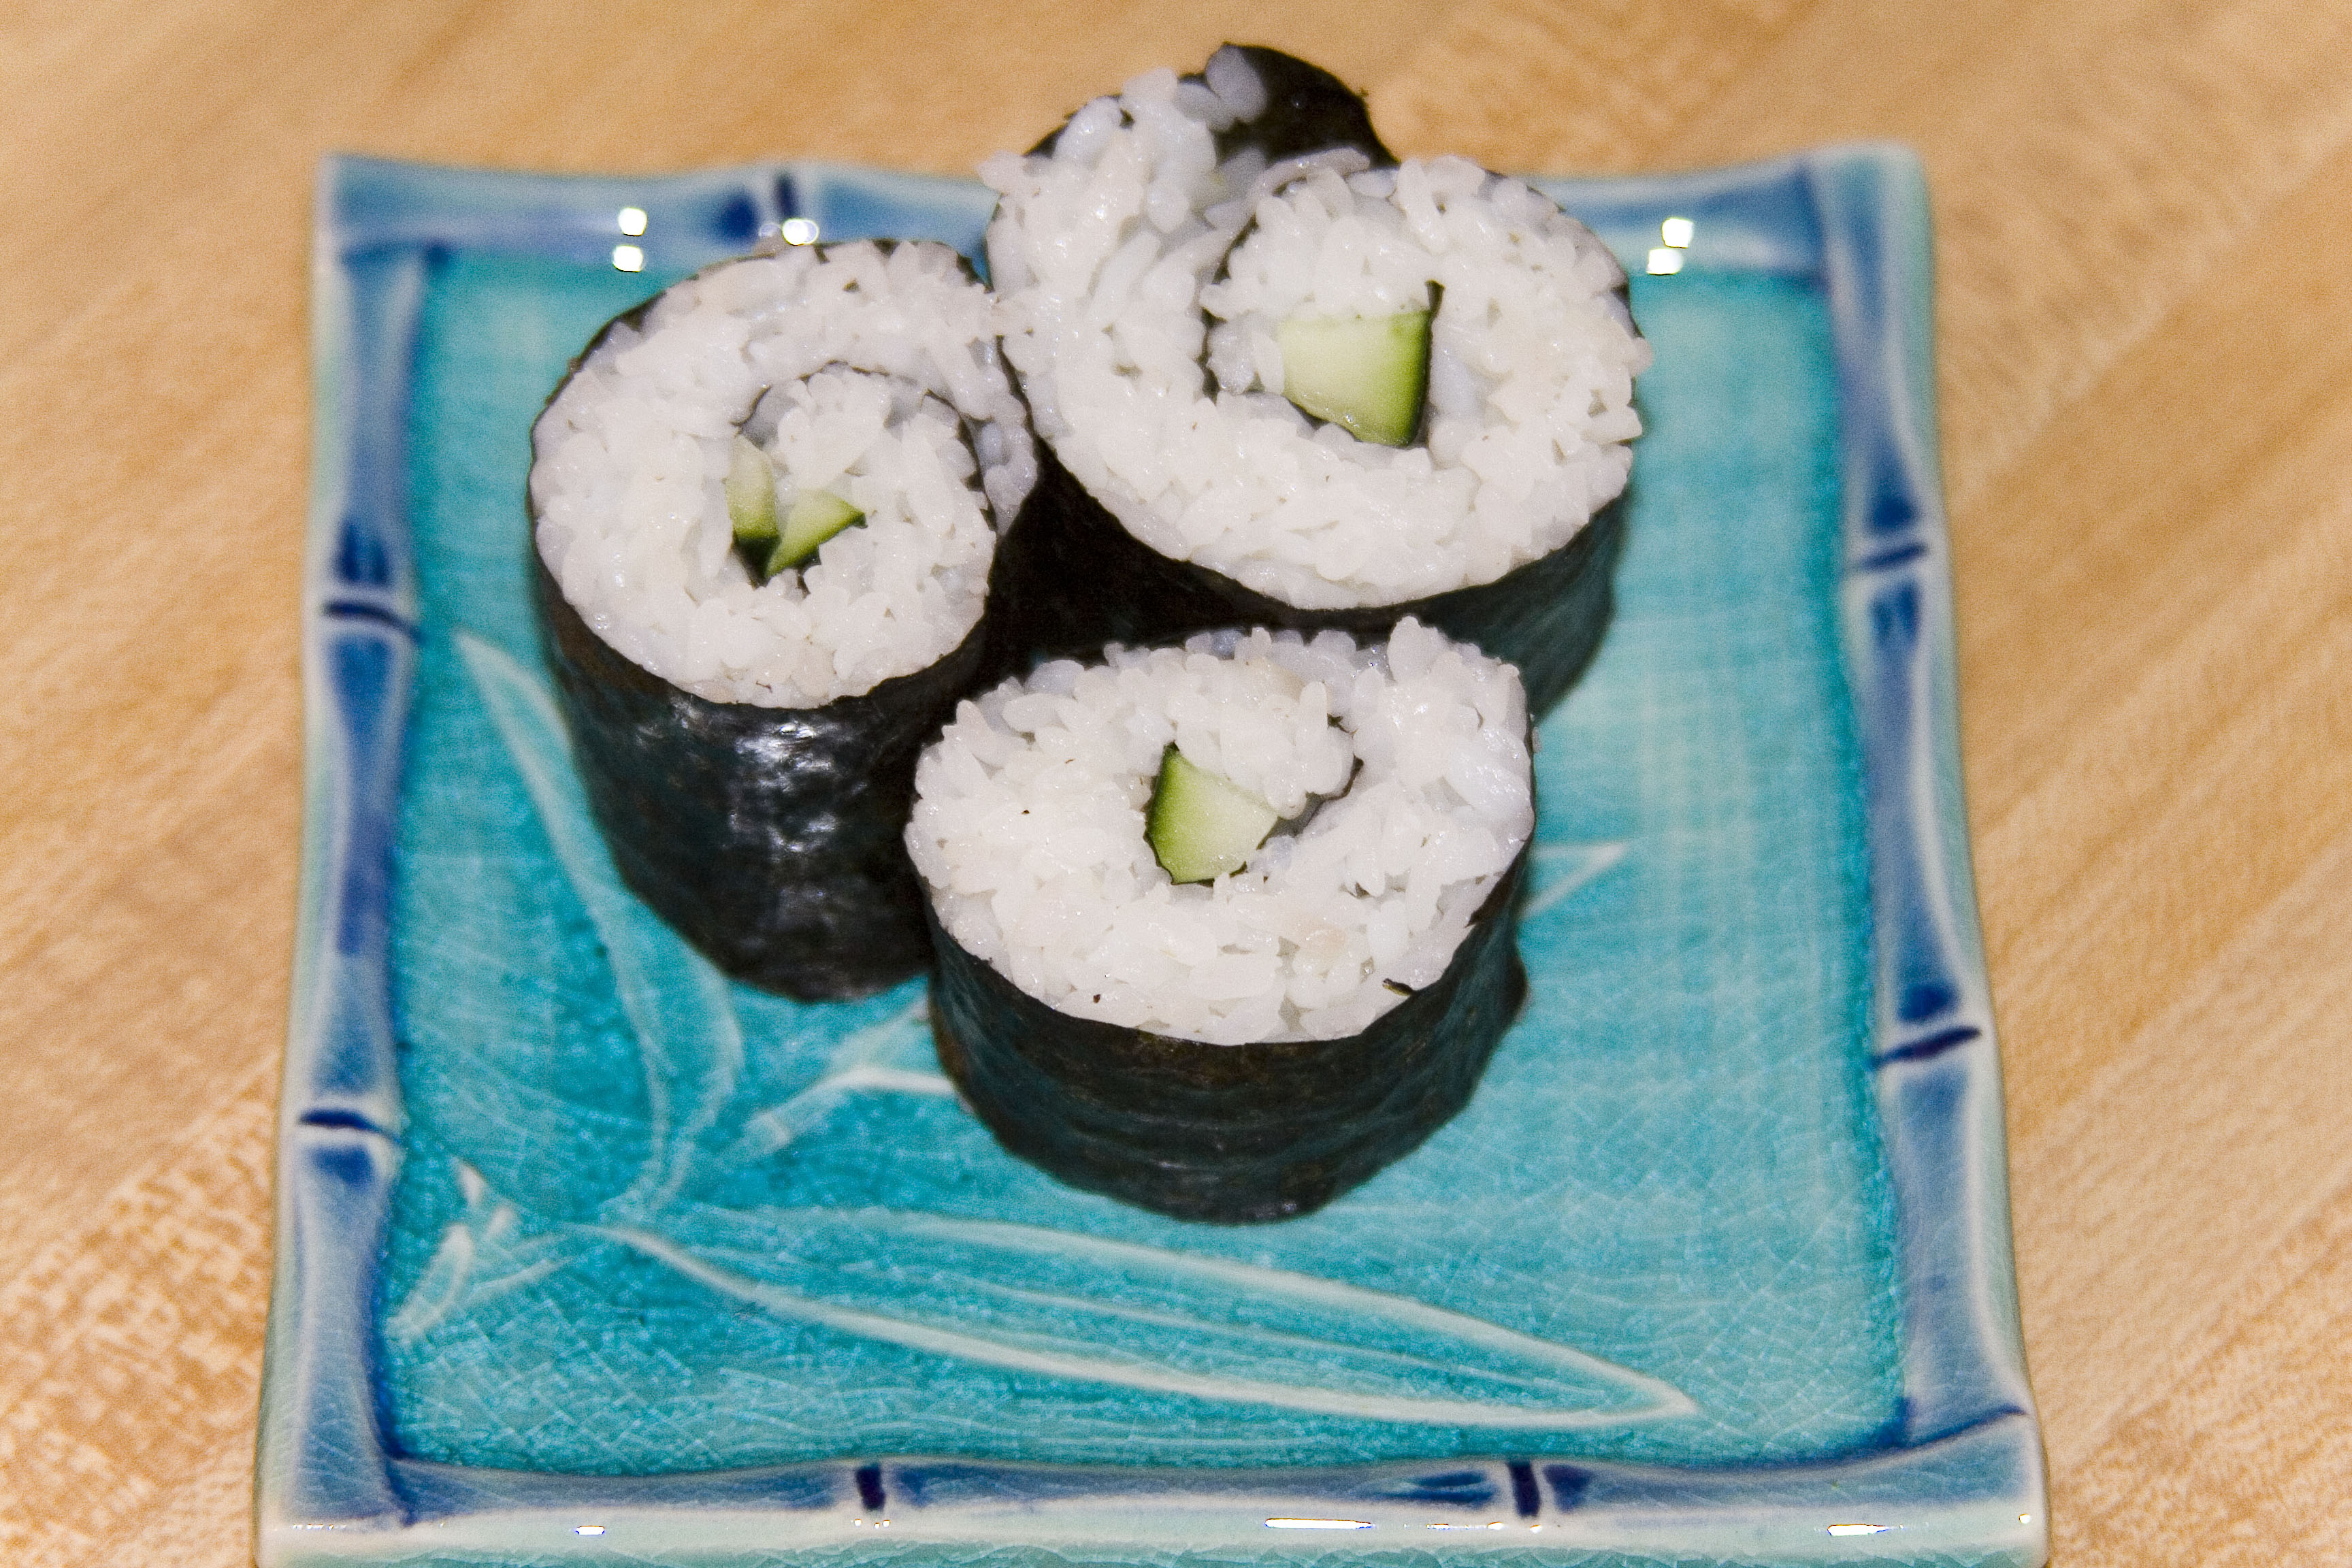 Cucumber rolls on a square turquoise plate